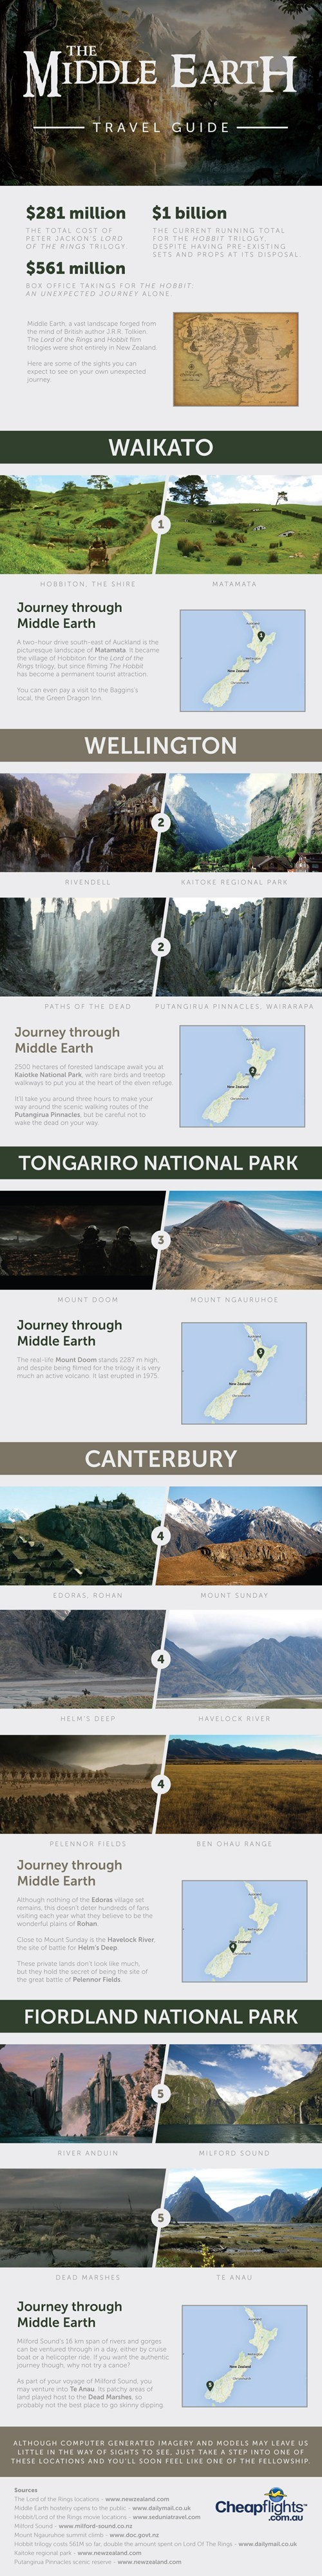 new zealand,infographic,Lord of the Rings,Travel